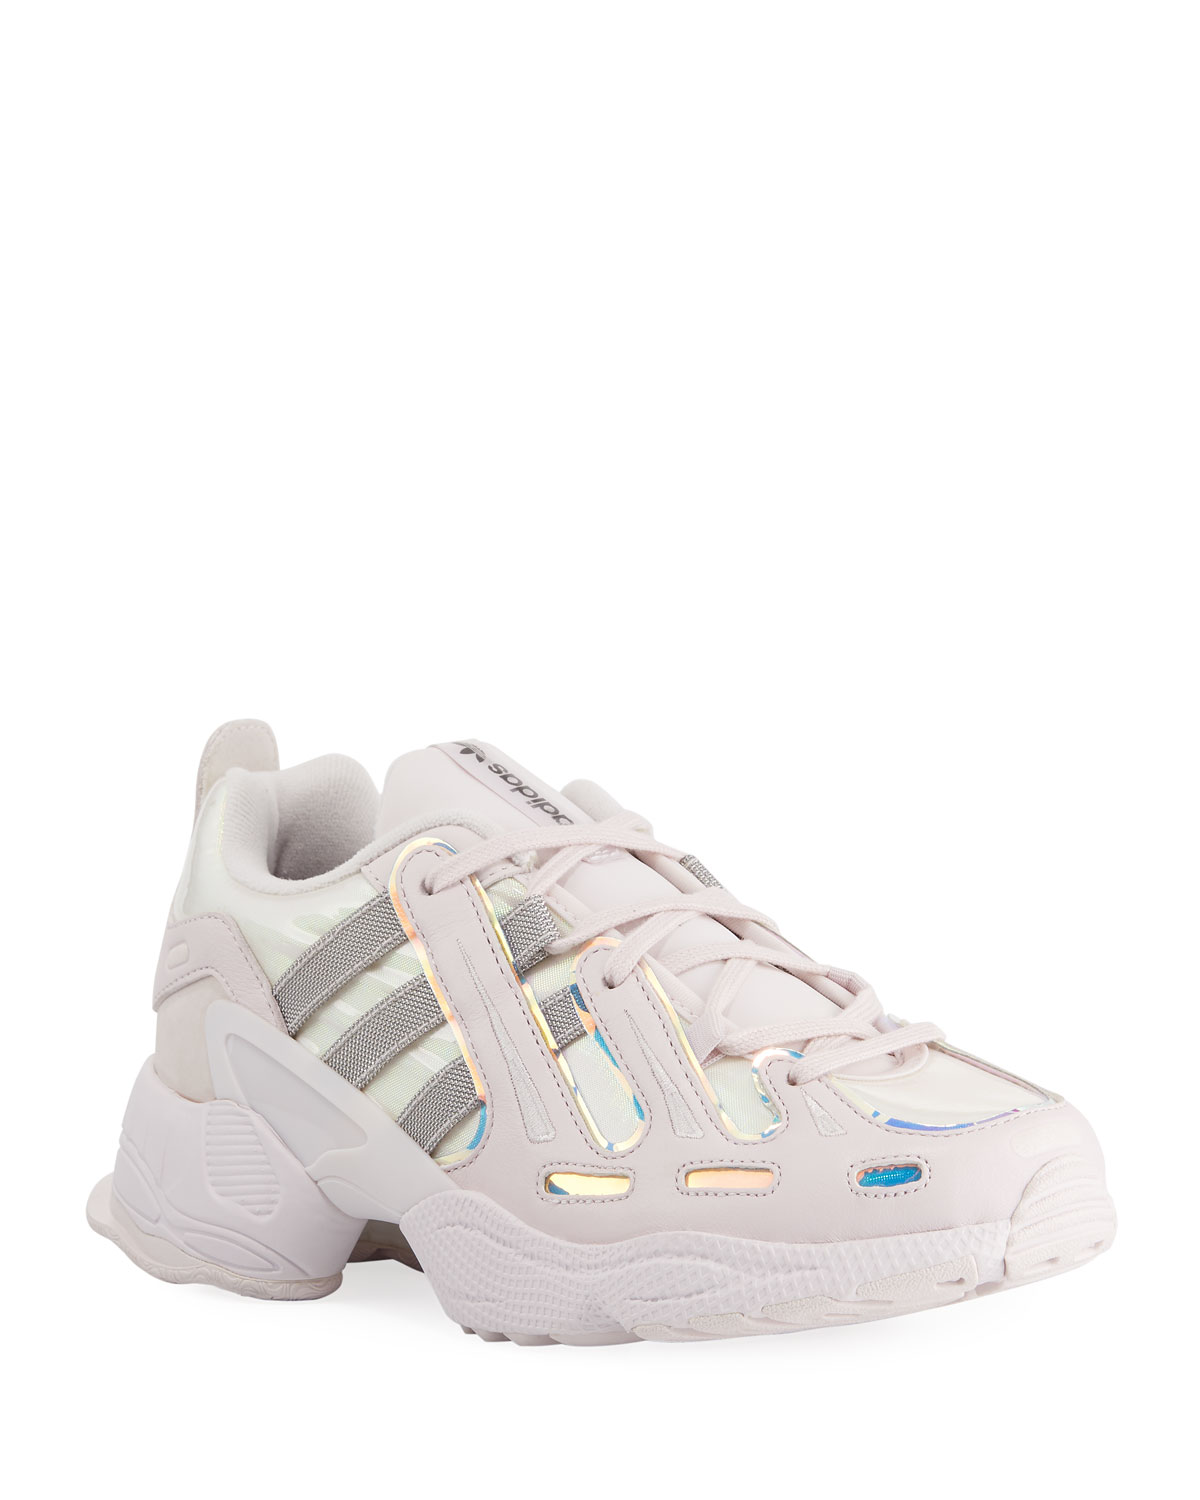 adidas chunky sneakers